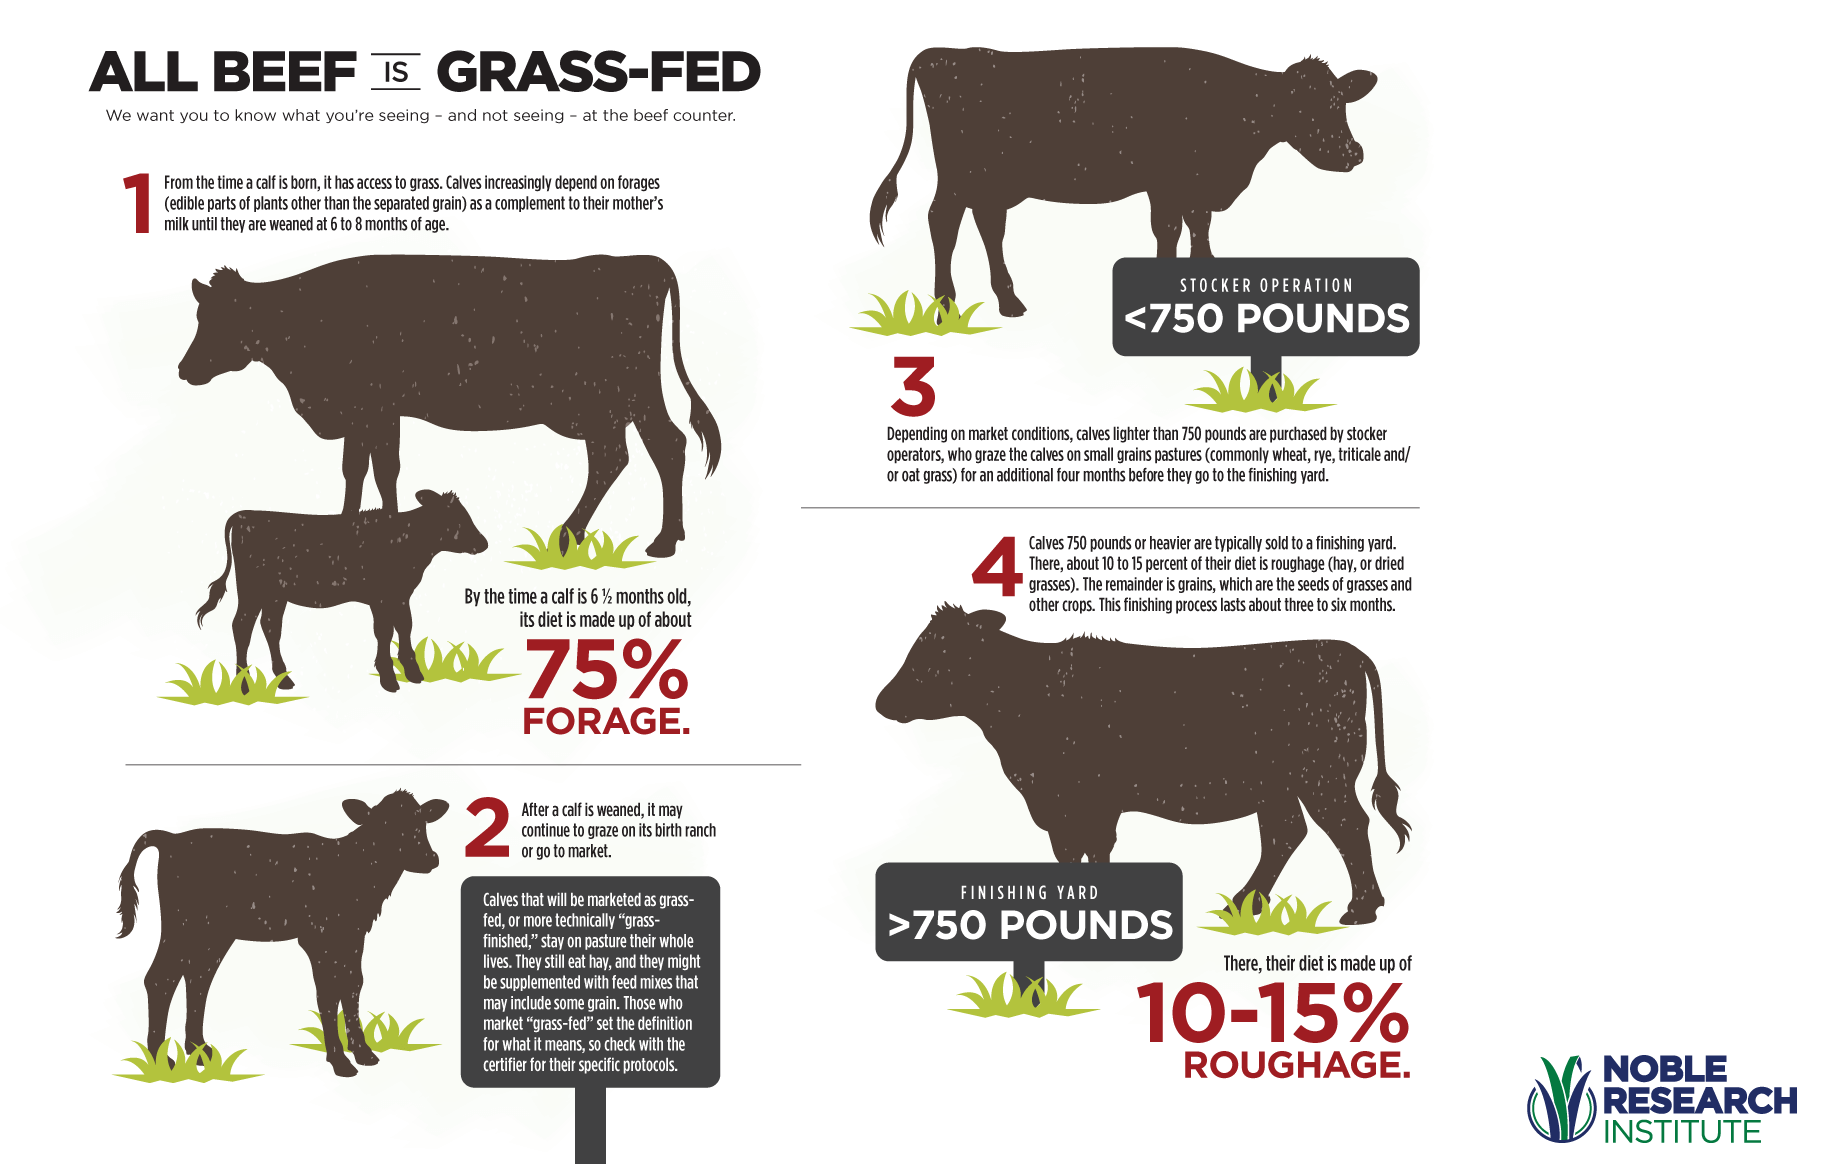 All Beef is Grass-fed infographic